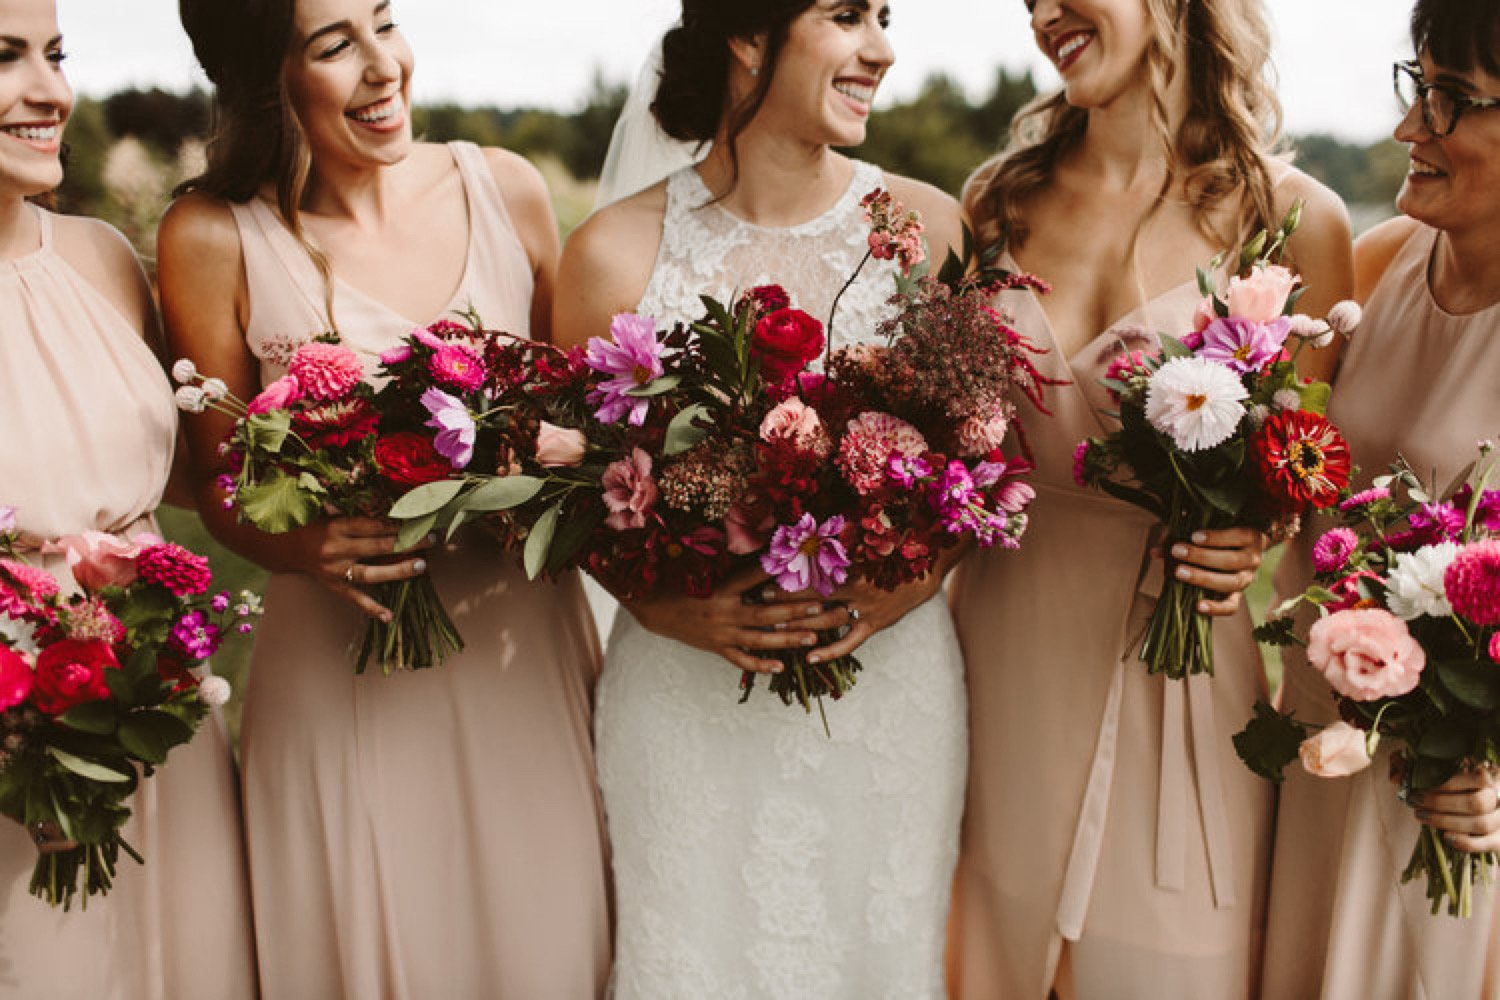 Bride and her bridesmaids holding whimsical bouquets of hot pink and purples.